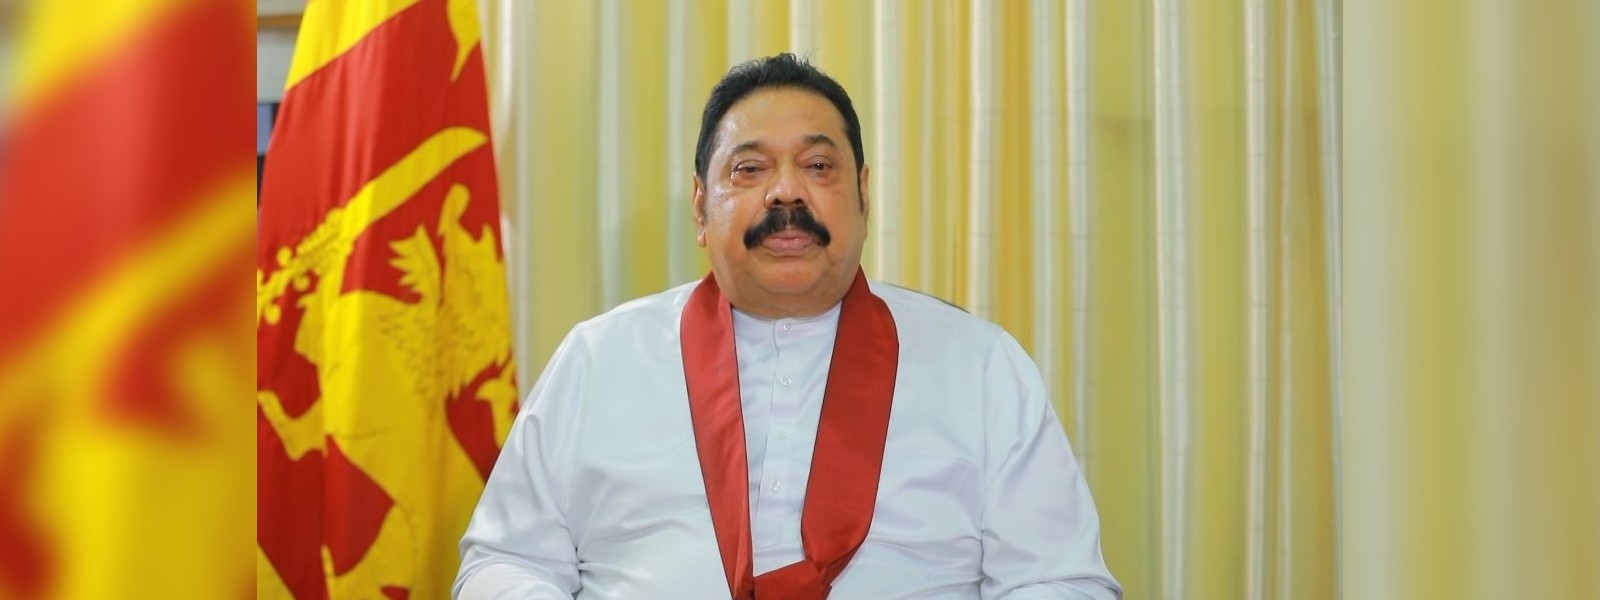 Prime Minister Mahinda Rajapaksa issues May Day message